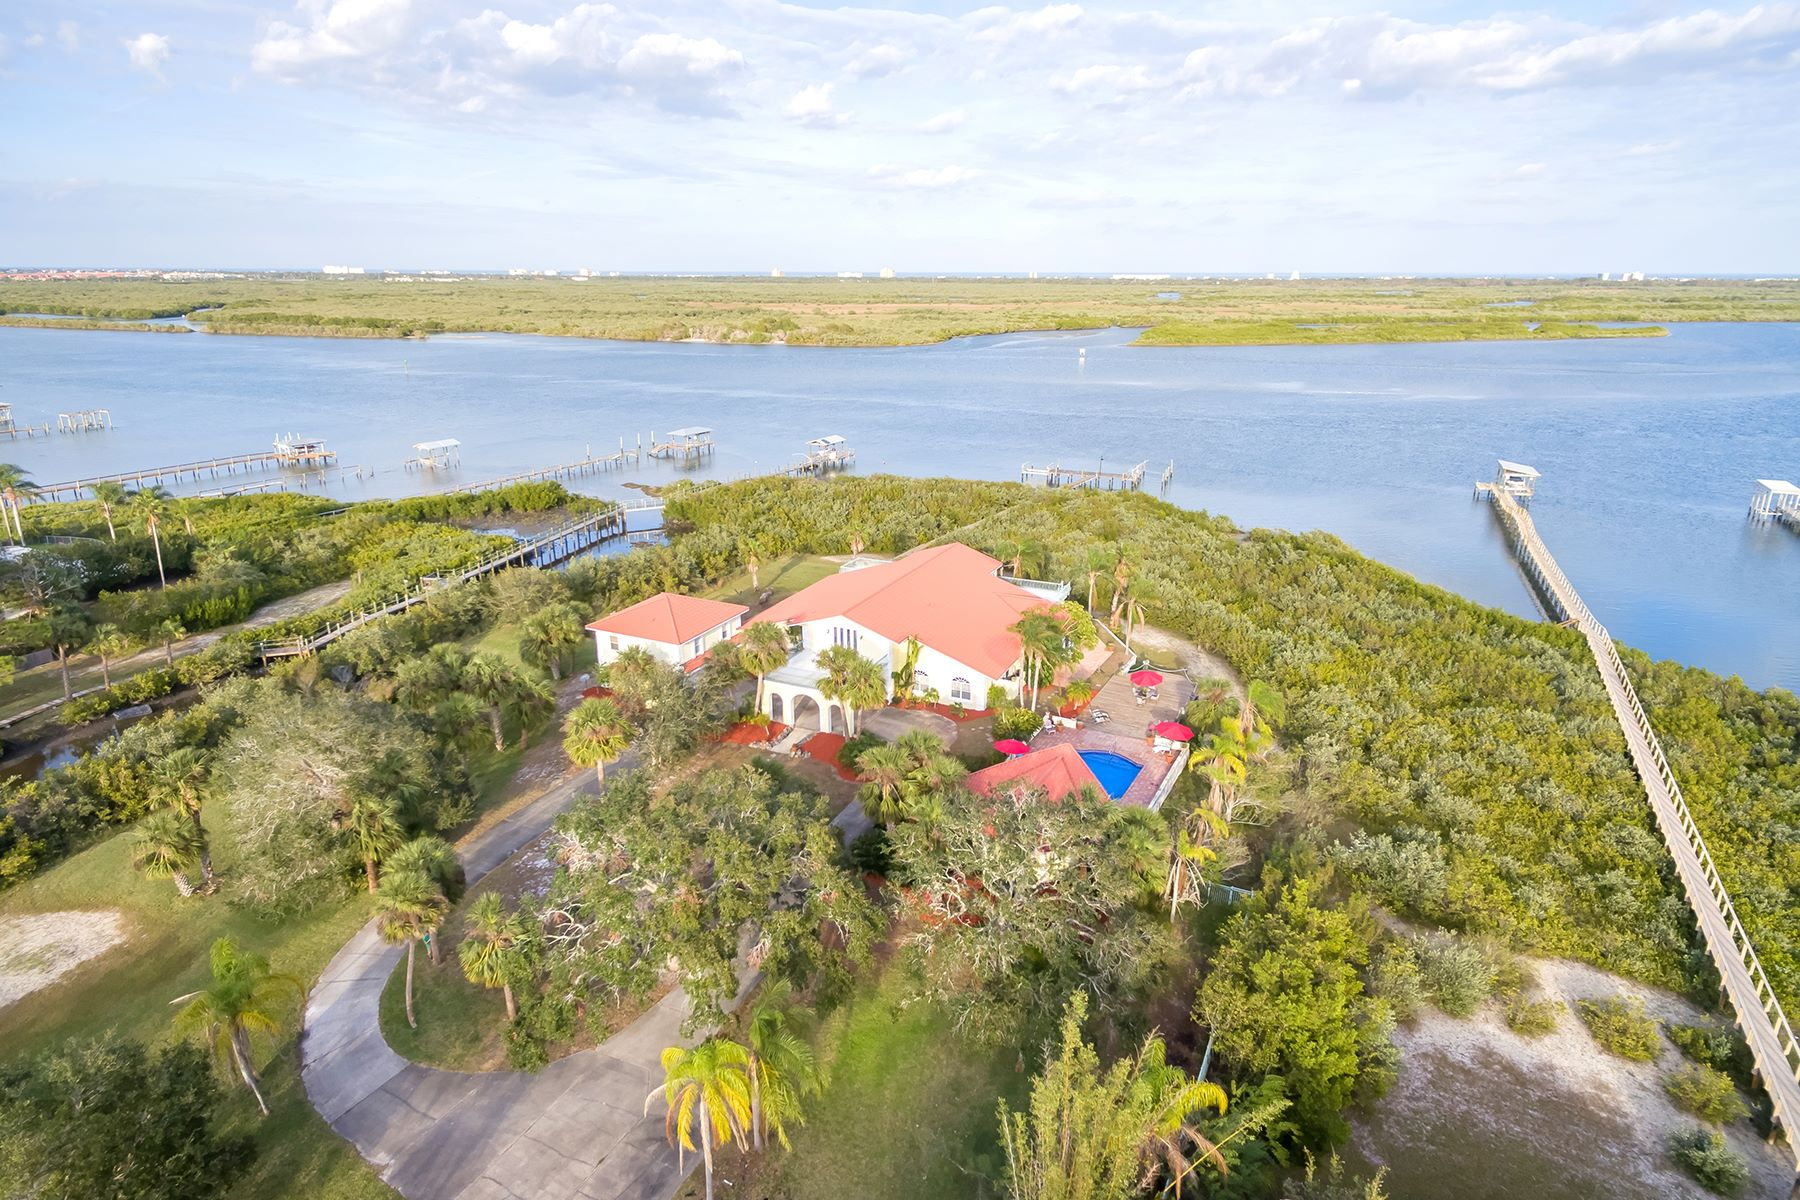 Single Family Home for Sale at NEW SMYRNA BEACH - EDGEWATER 621 N Riverside Dr Edgewater, Florida 32132 United States